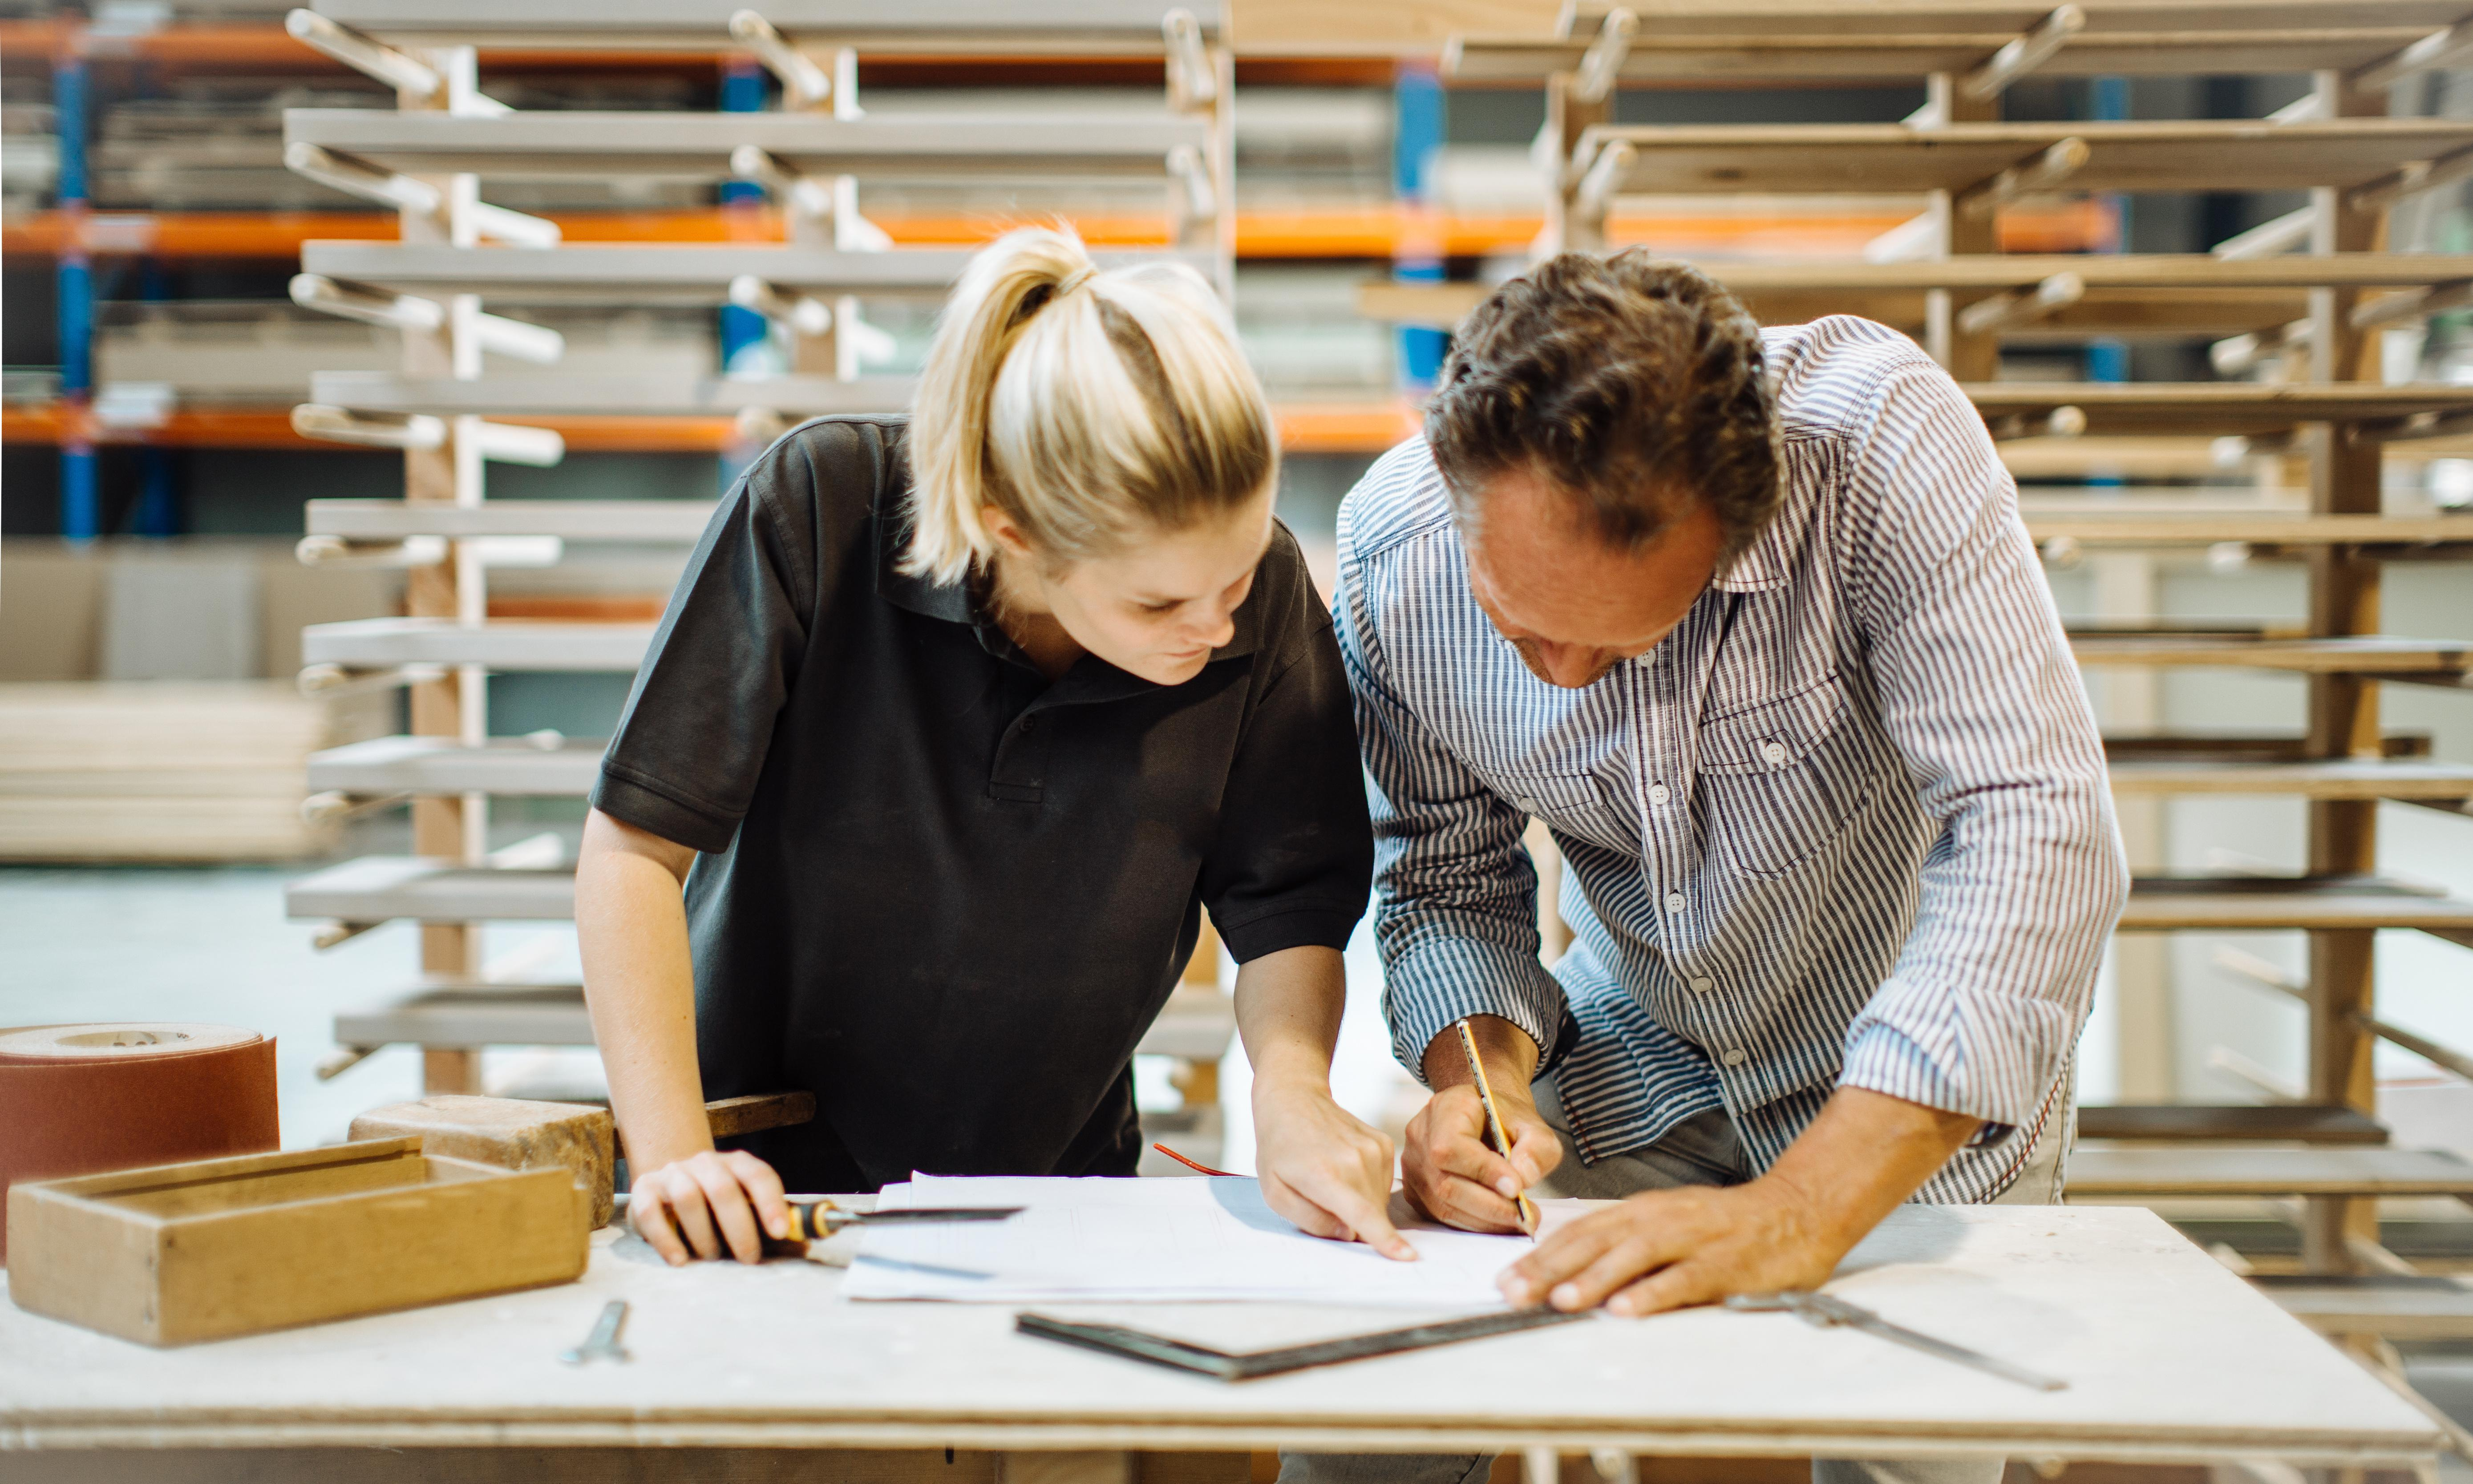 The Guardian view on apprenticeships: failing the young